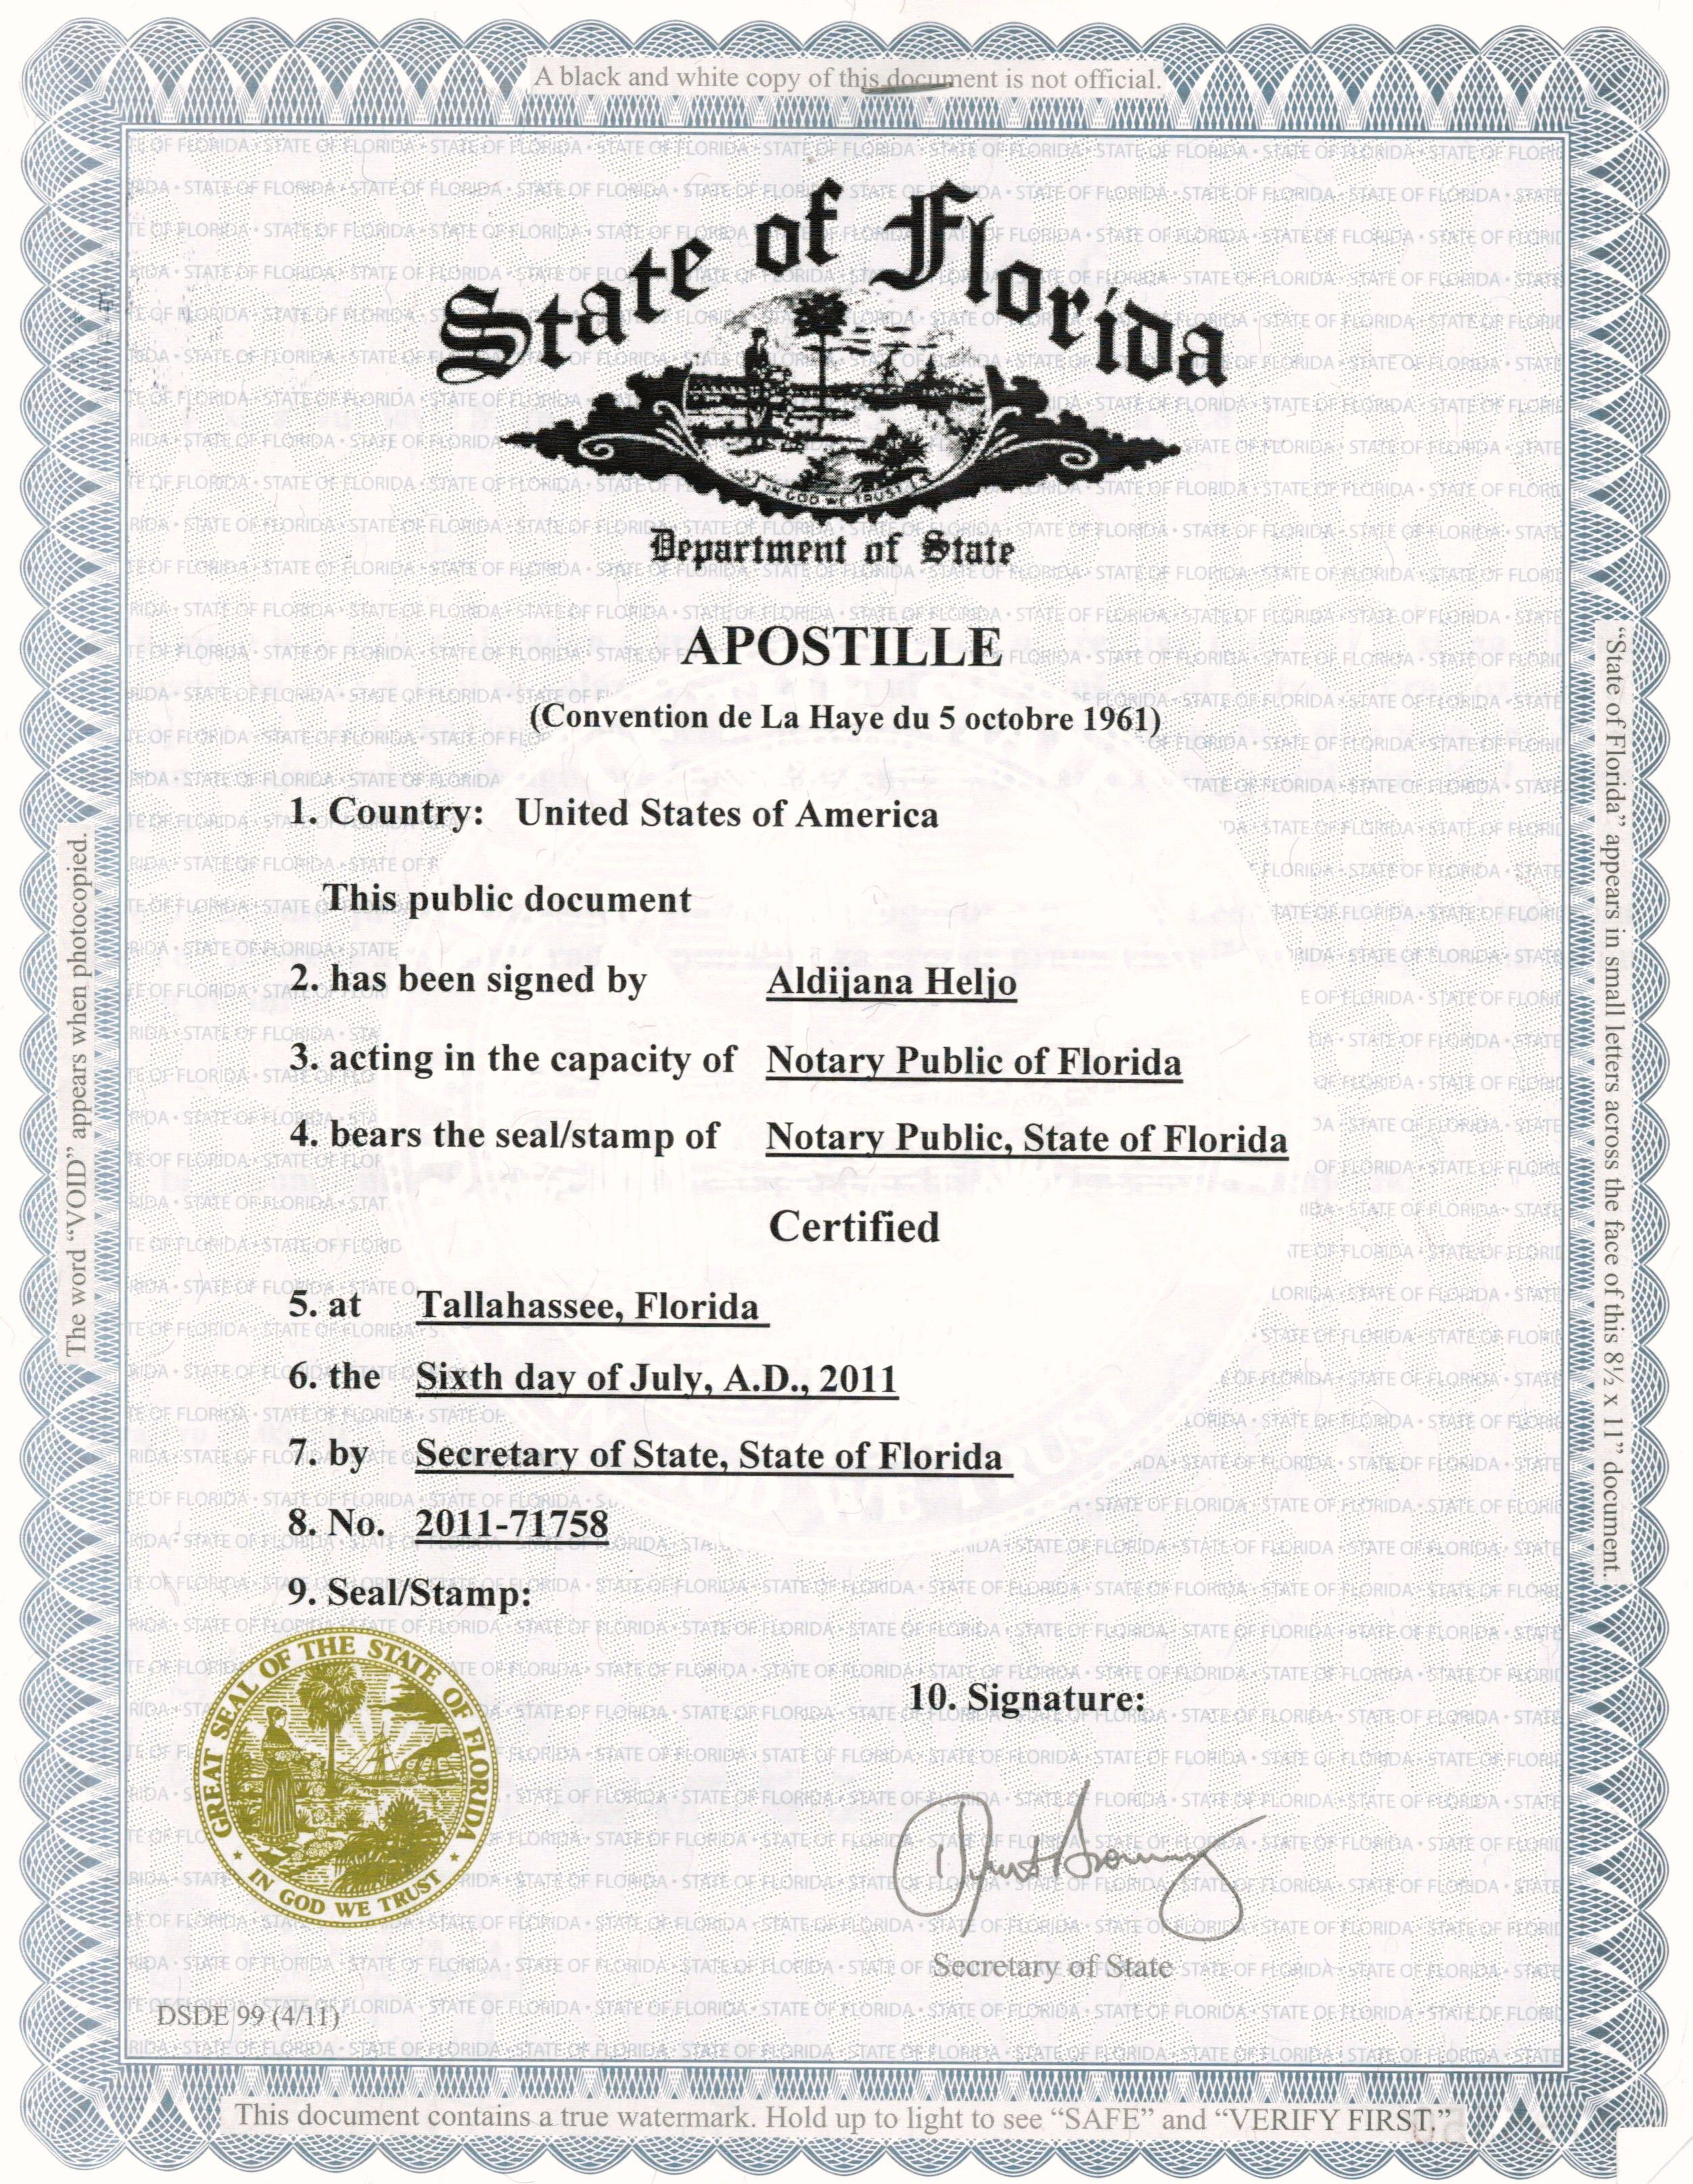 Website apostille portfolio notary apostille service inc legalization or certification of authority images by notary apostille service xflitez Image collections